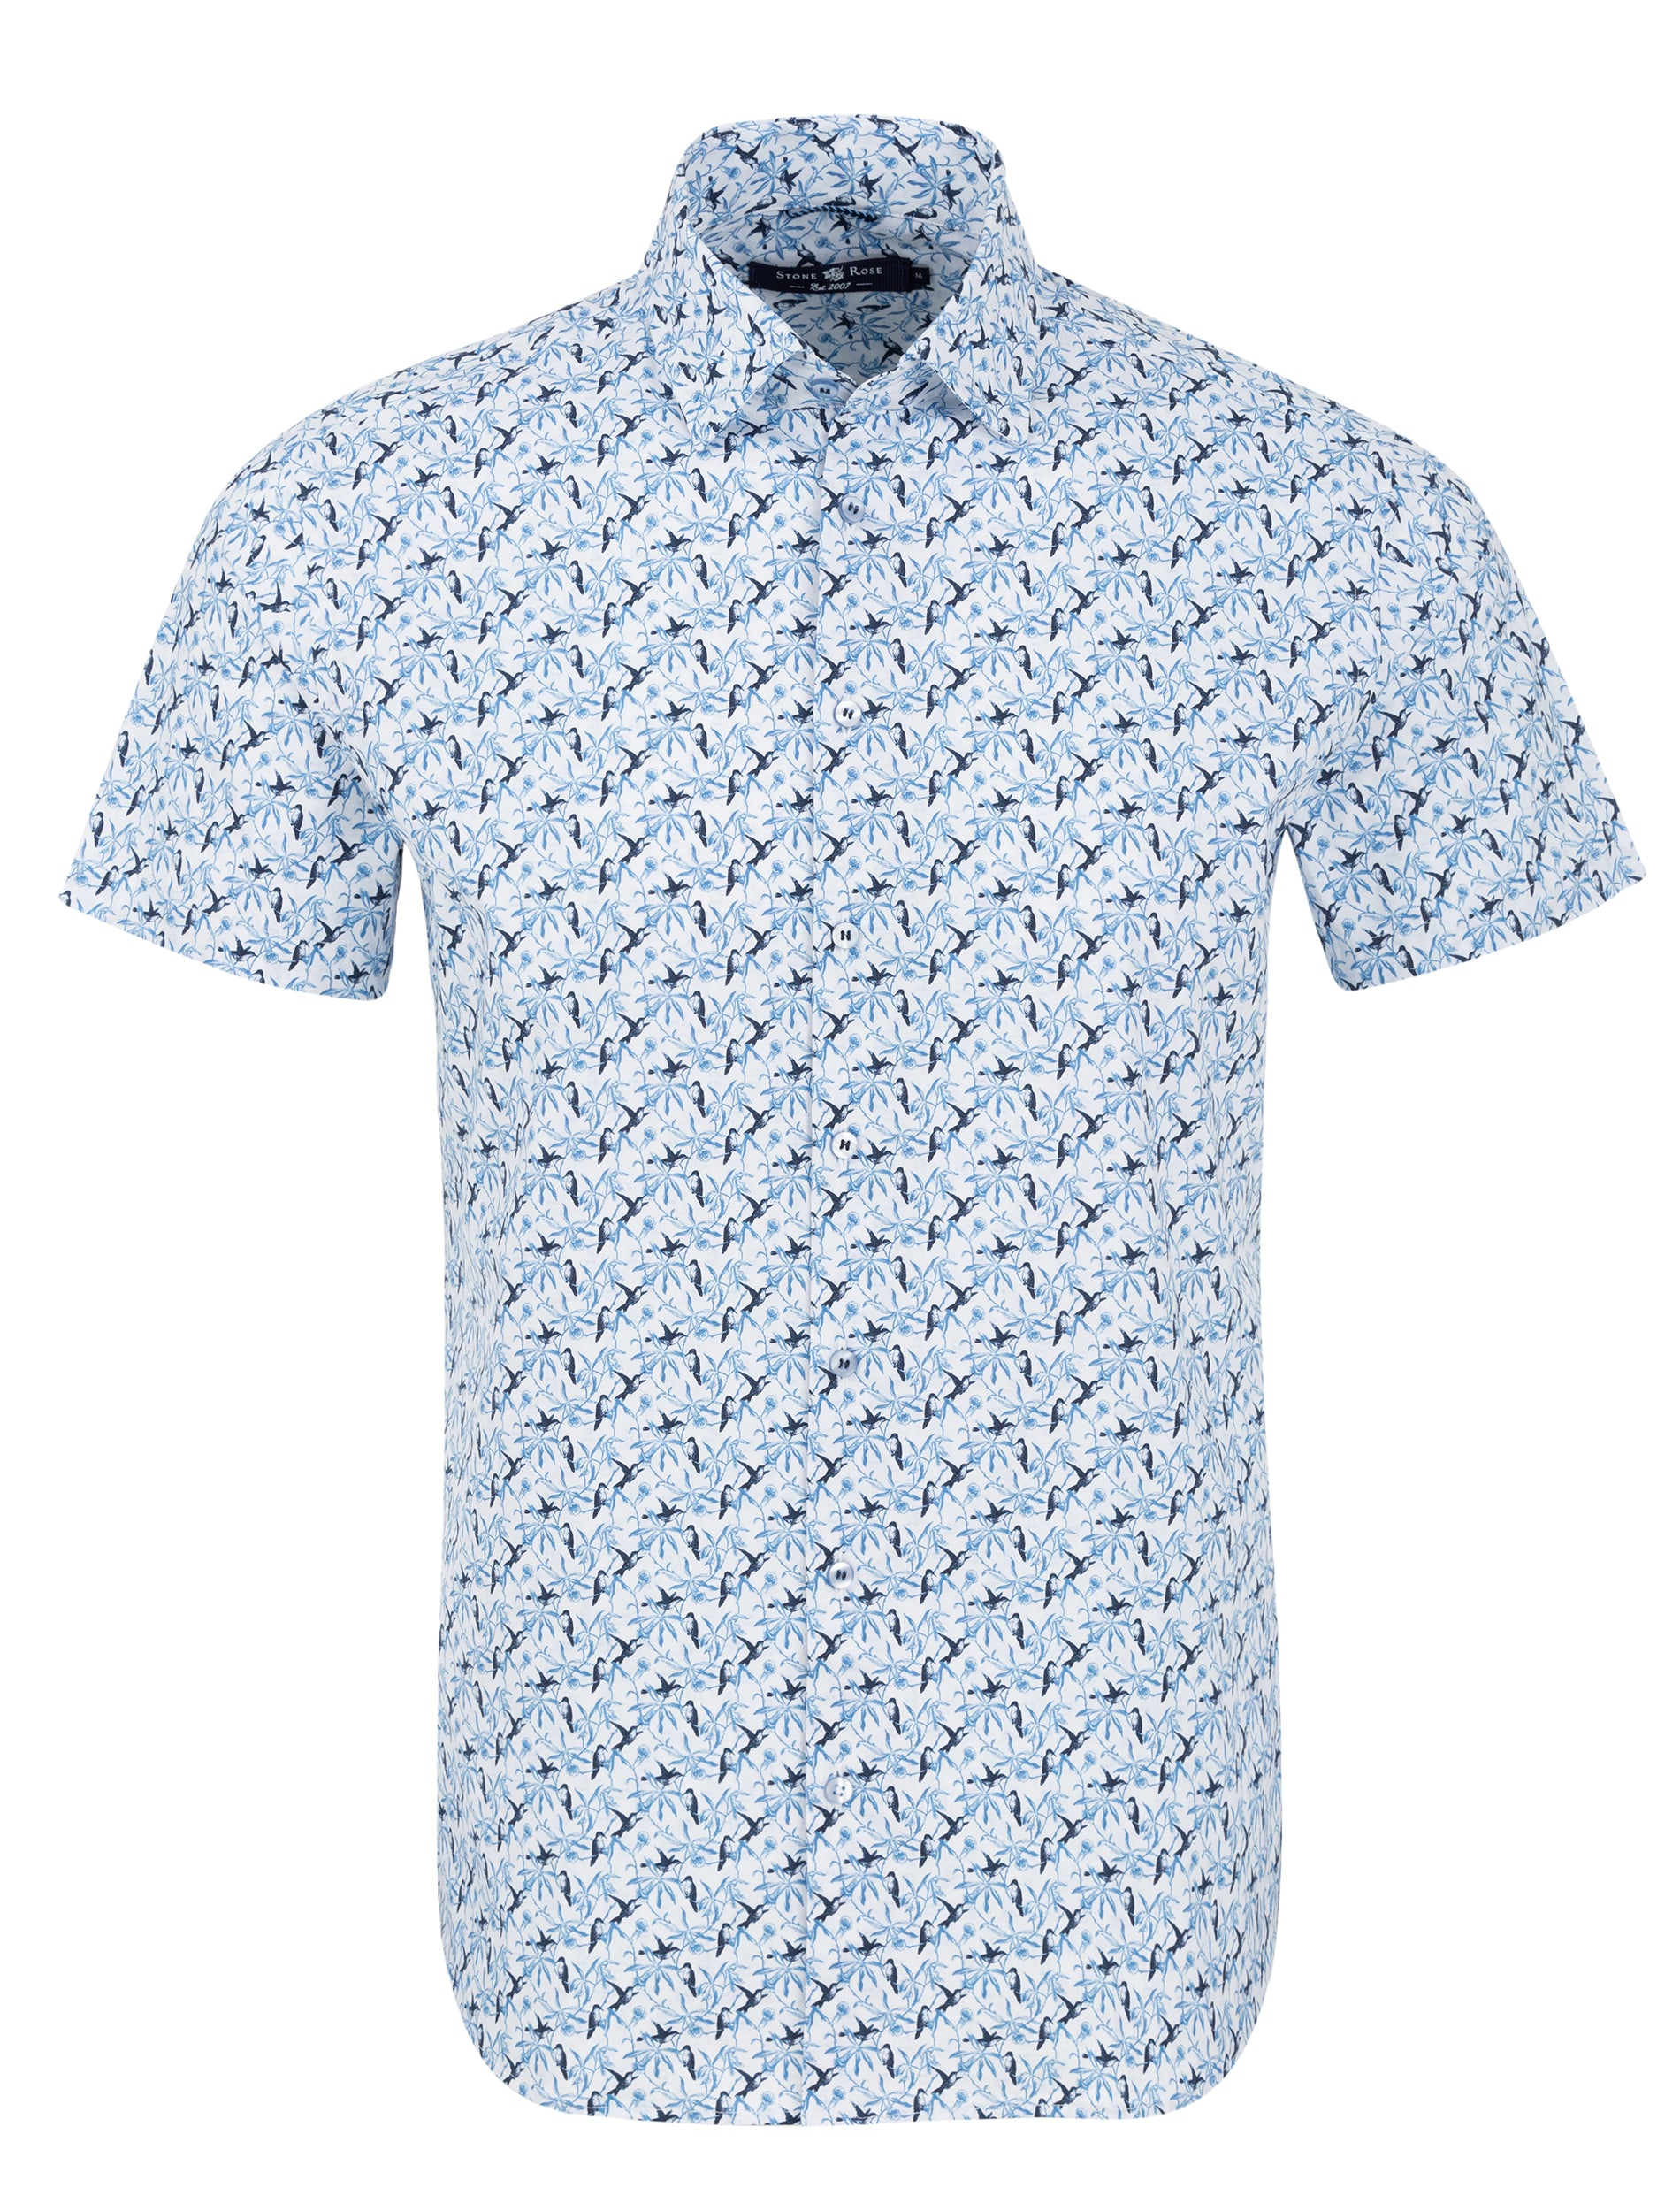 Blue Bird Print Short Sleeve Shirt-Stone Rose